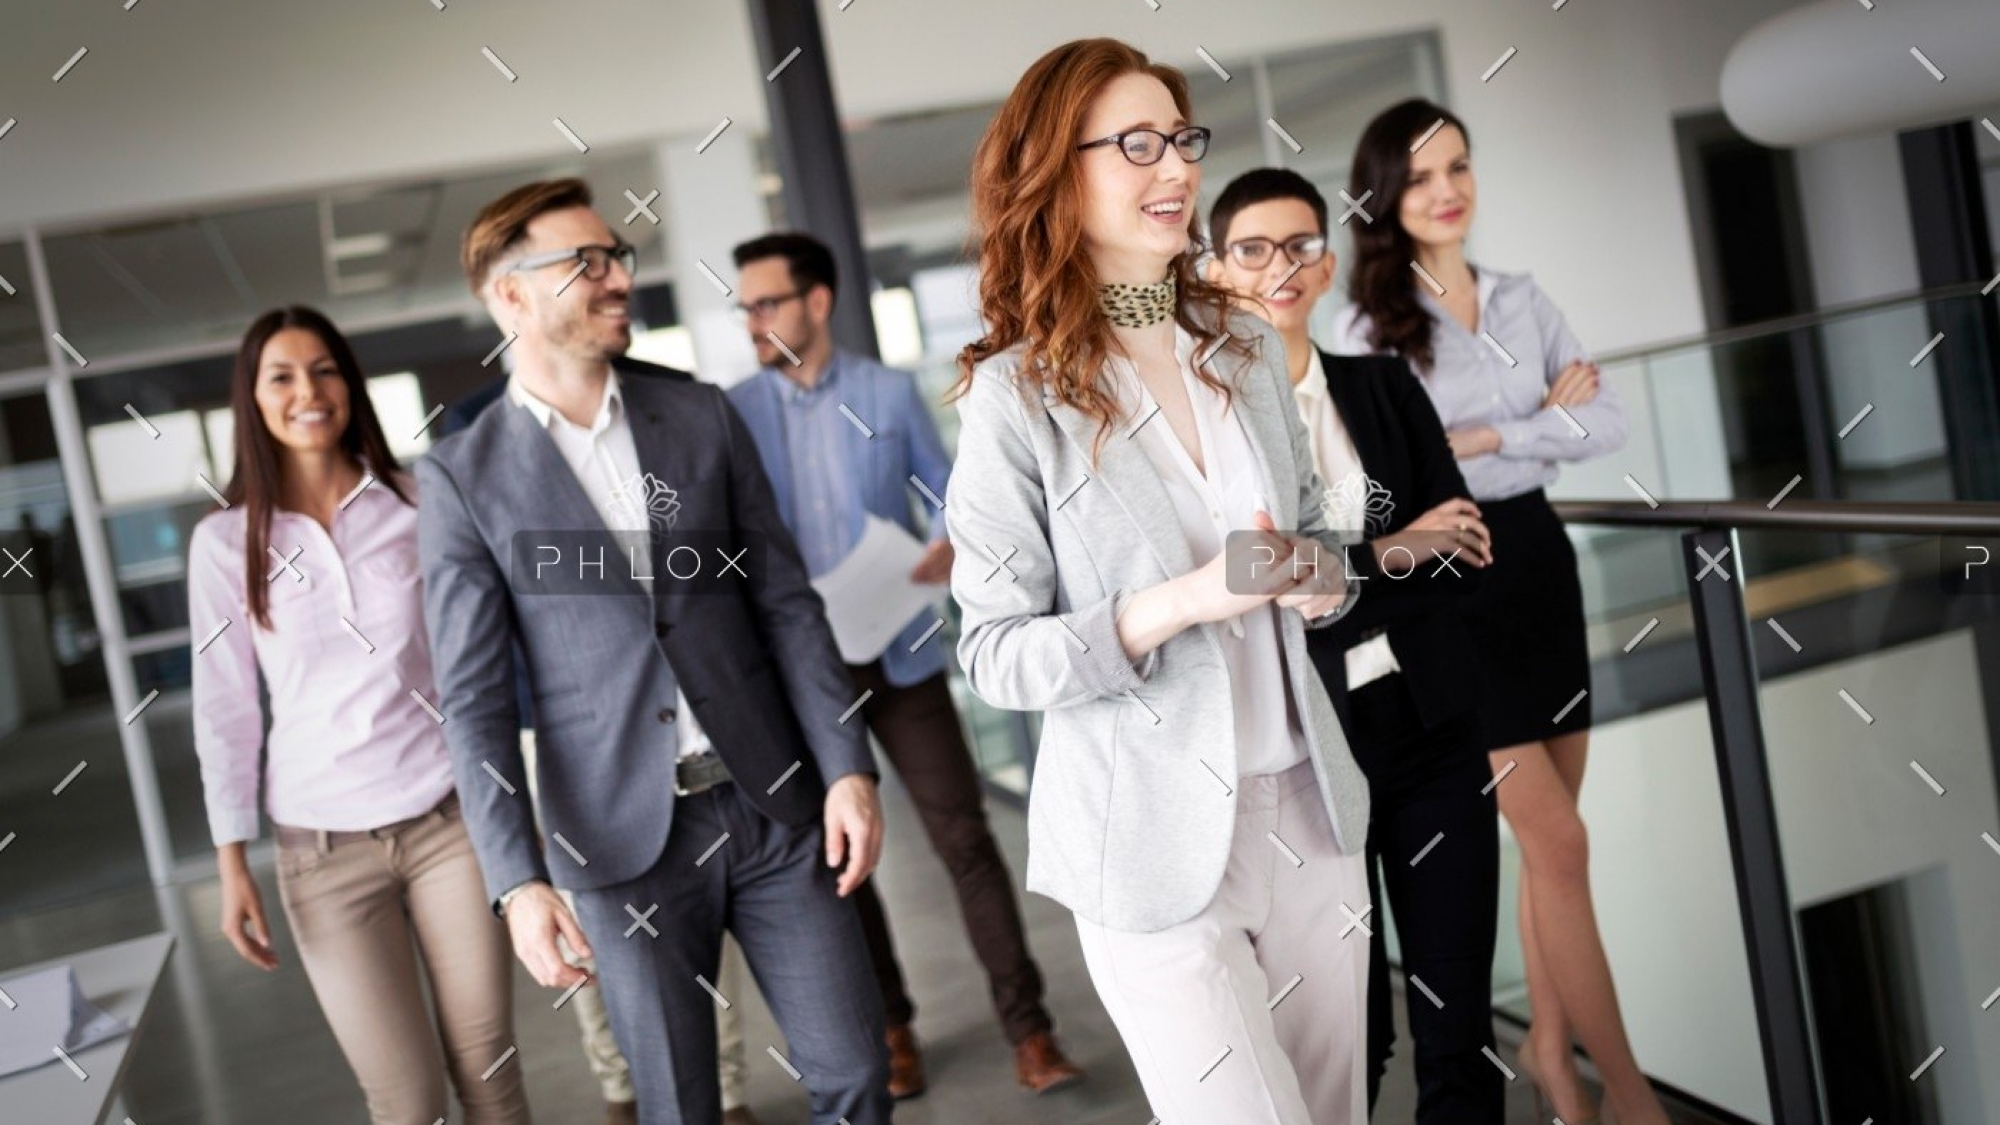 demo-attachment-2708-business-young-people-meeting-conference-65BA9P7